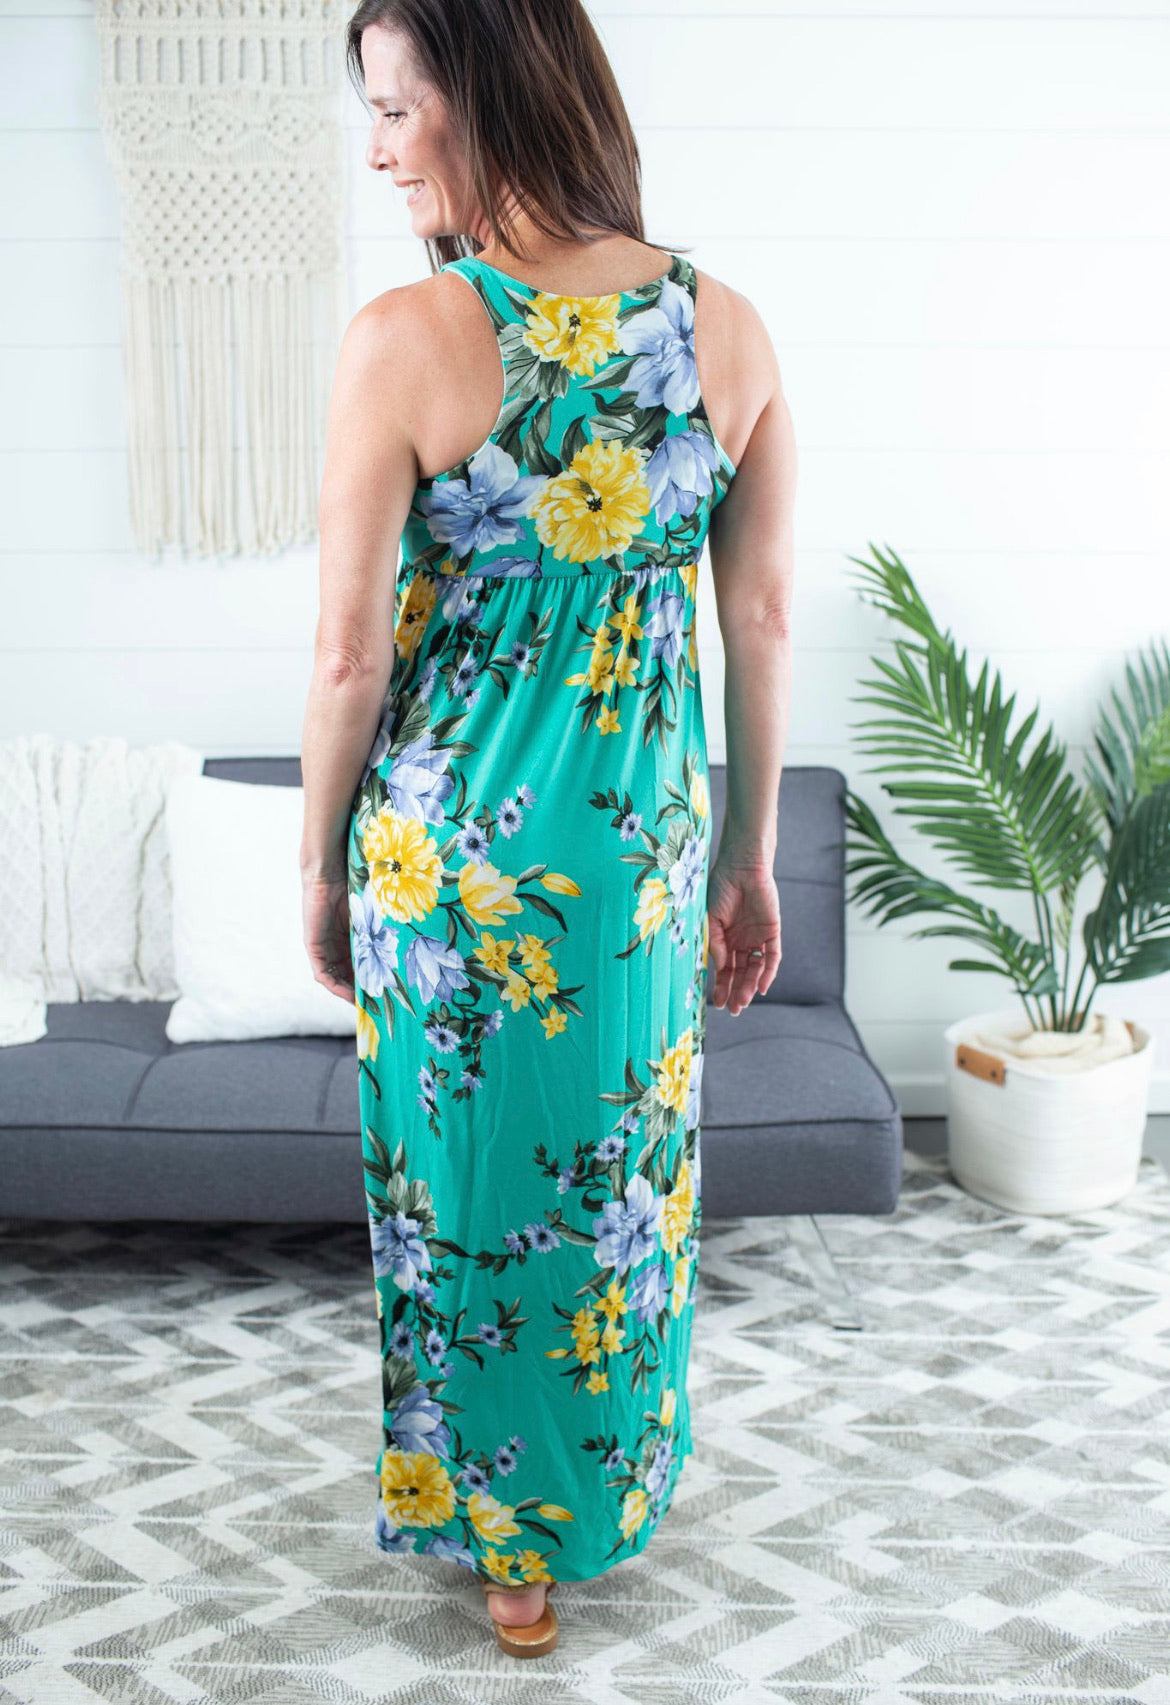 Floral Print Maxi Dress - Kelly Green